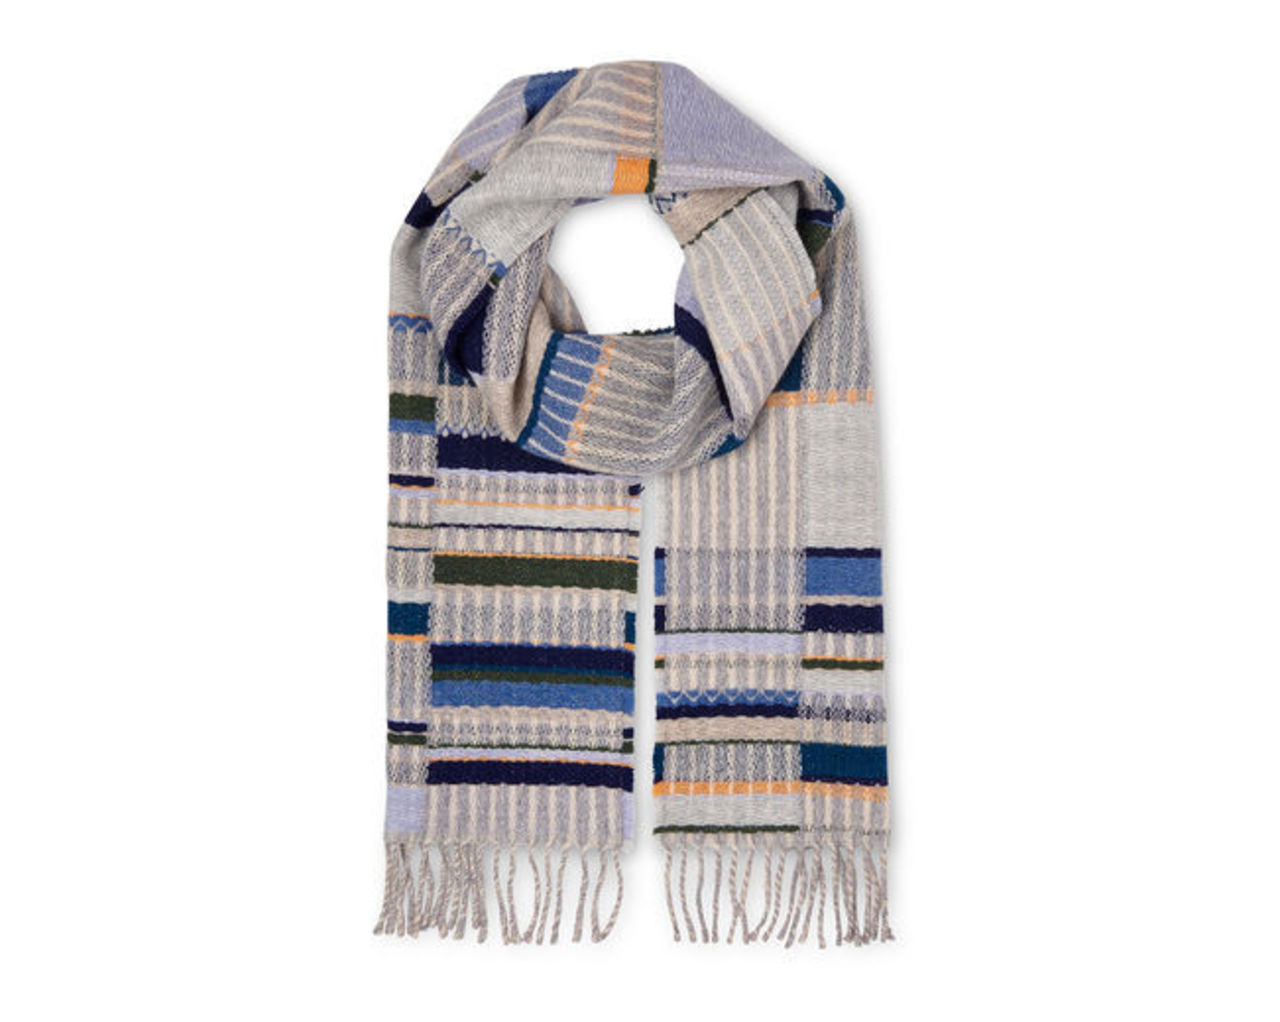 Wallace and Sewell Klee Scarf